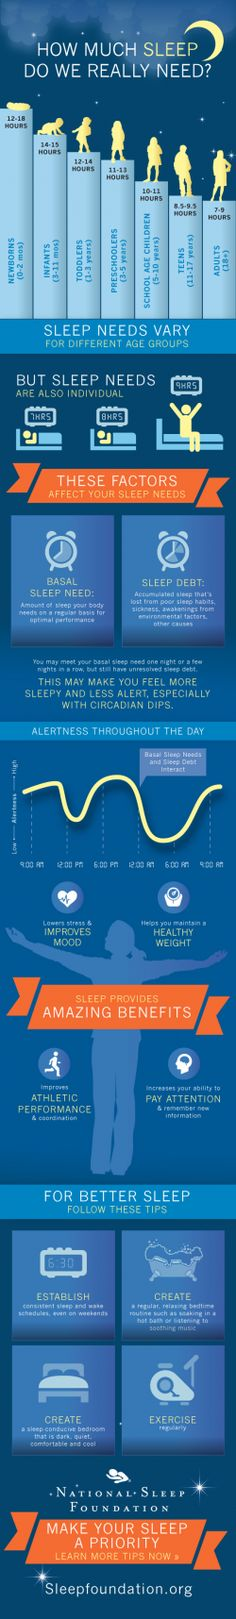 This pin is probably the most important because it explains how much hours a person should be sleeping and the benefits it comes with.